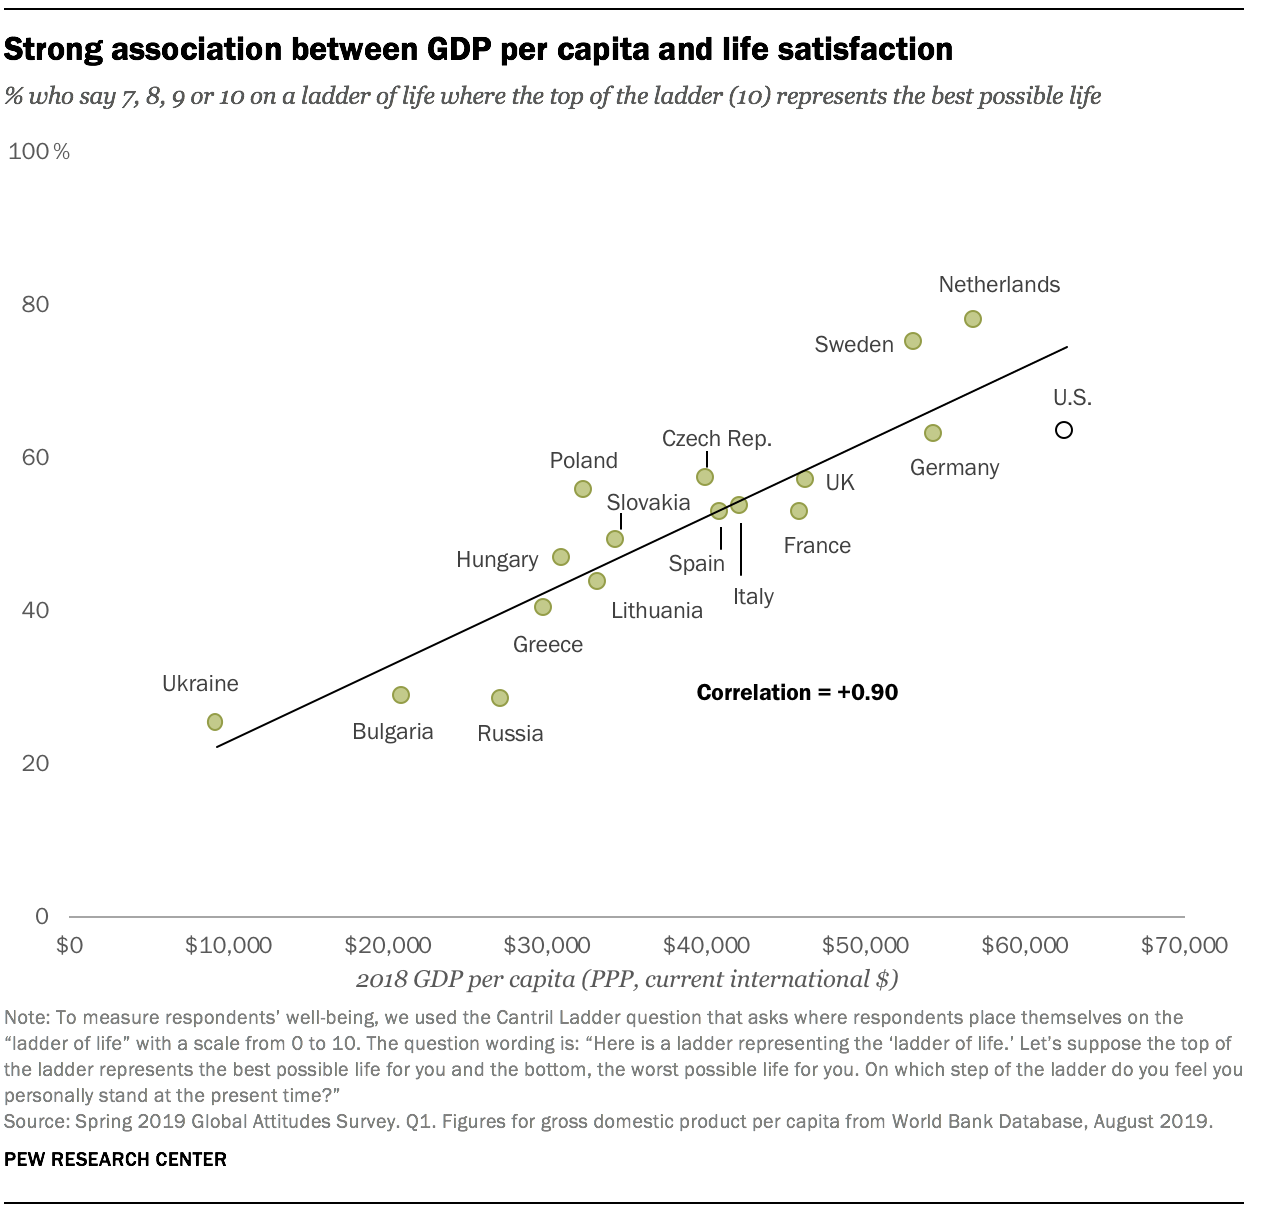 Strong association between GDP per capita and life satisfaction